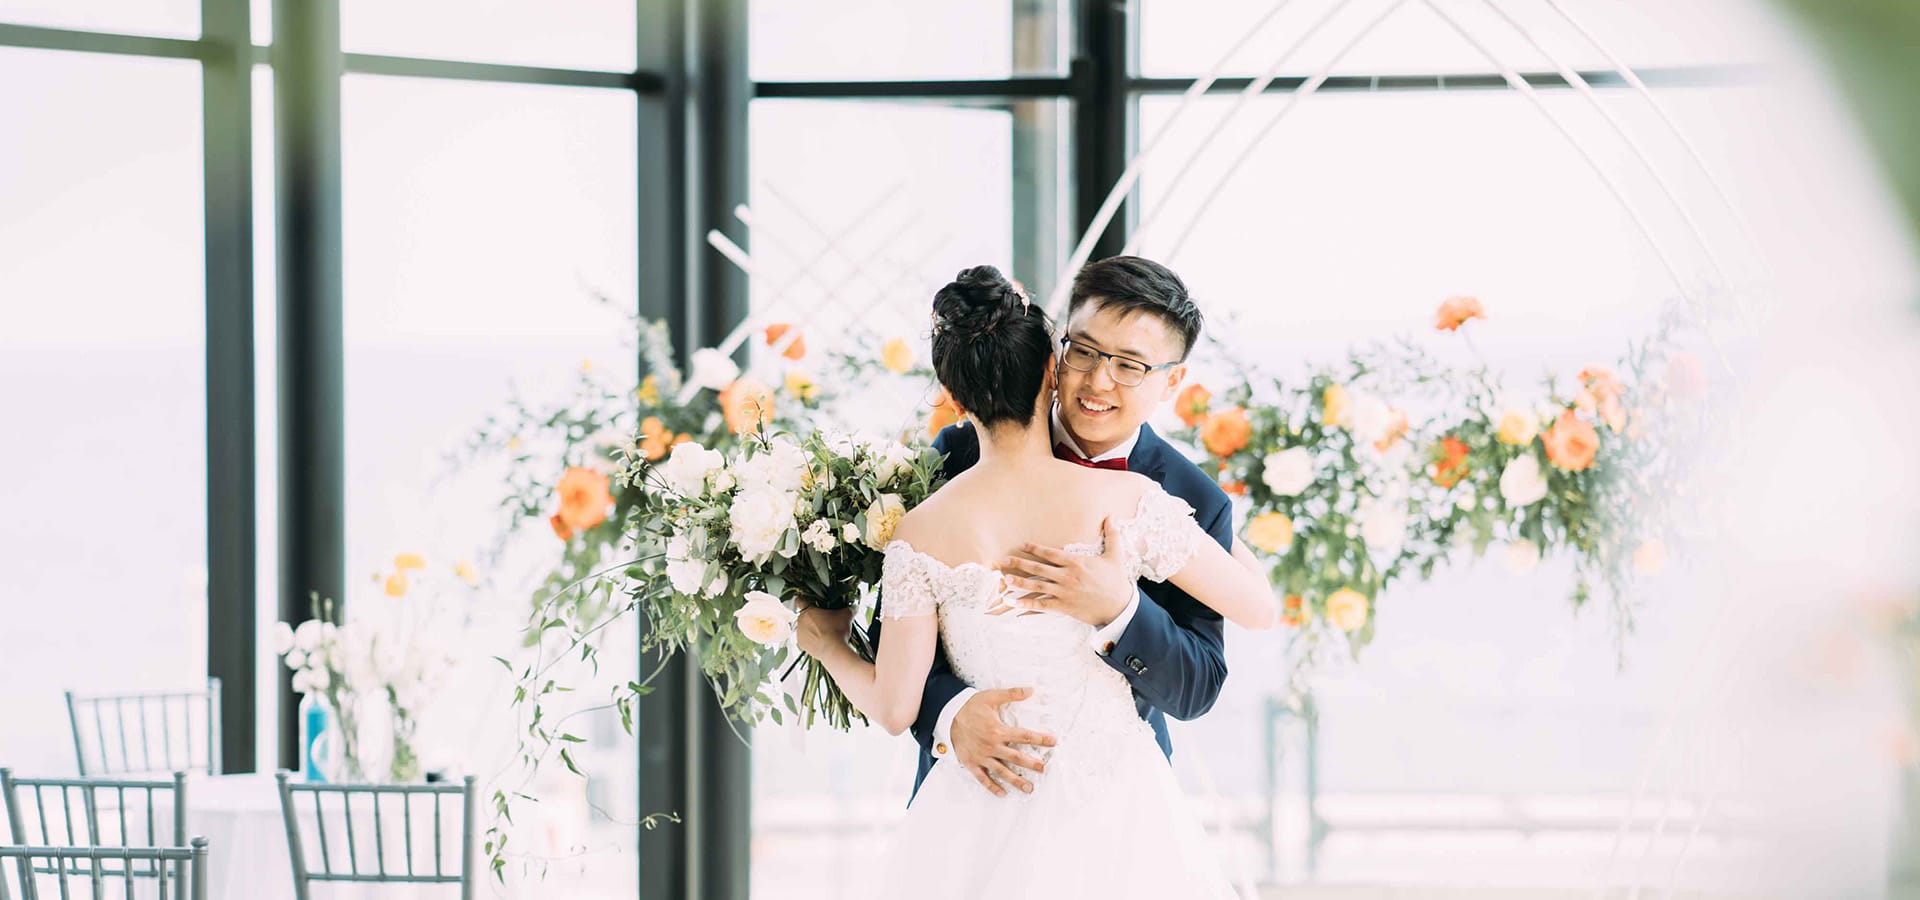 Hero image for Lisa and Jason's Citrus Infused Wedding at Spencer's at the Waterfront